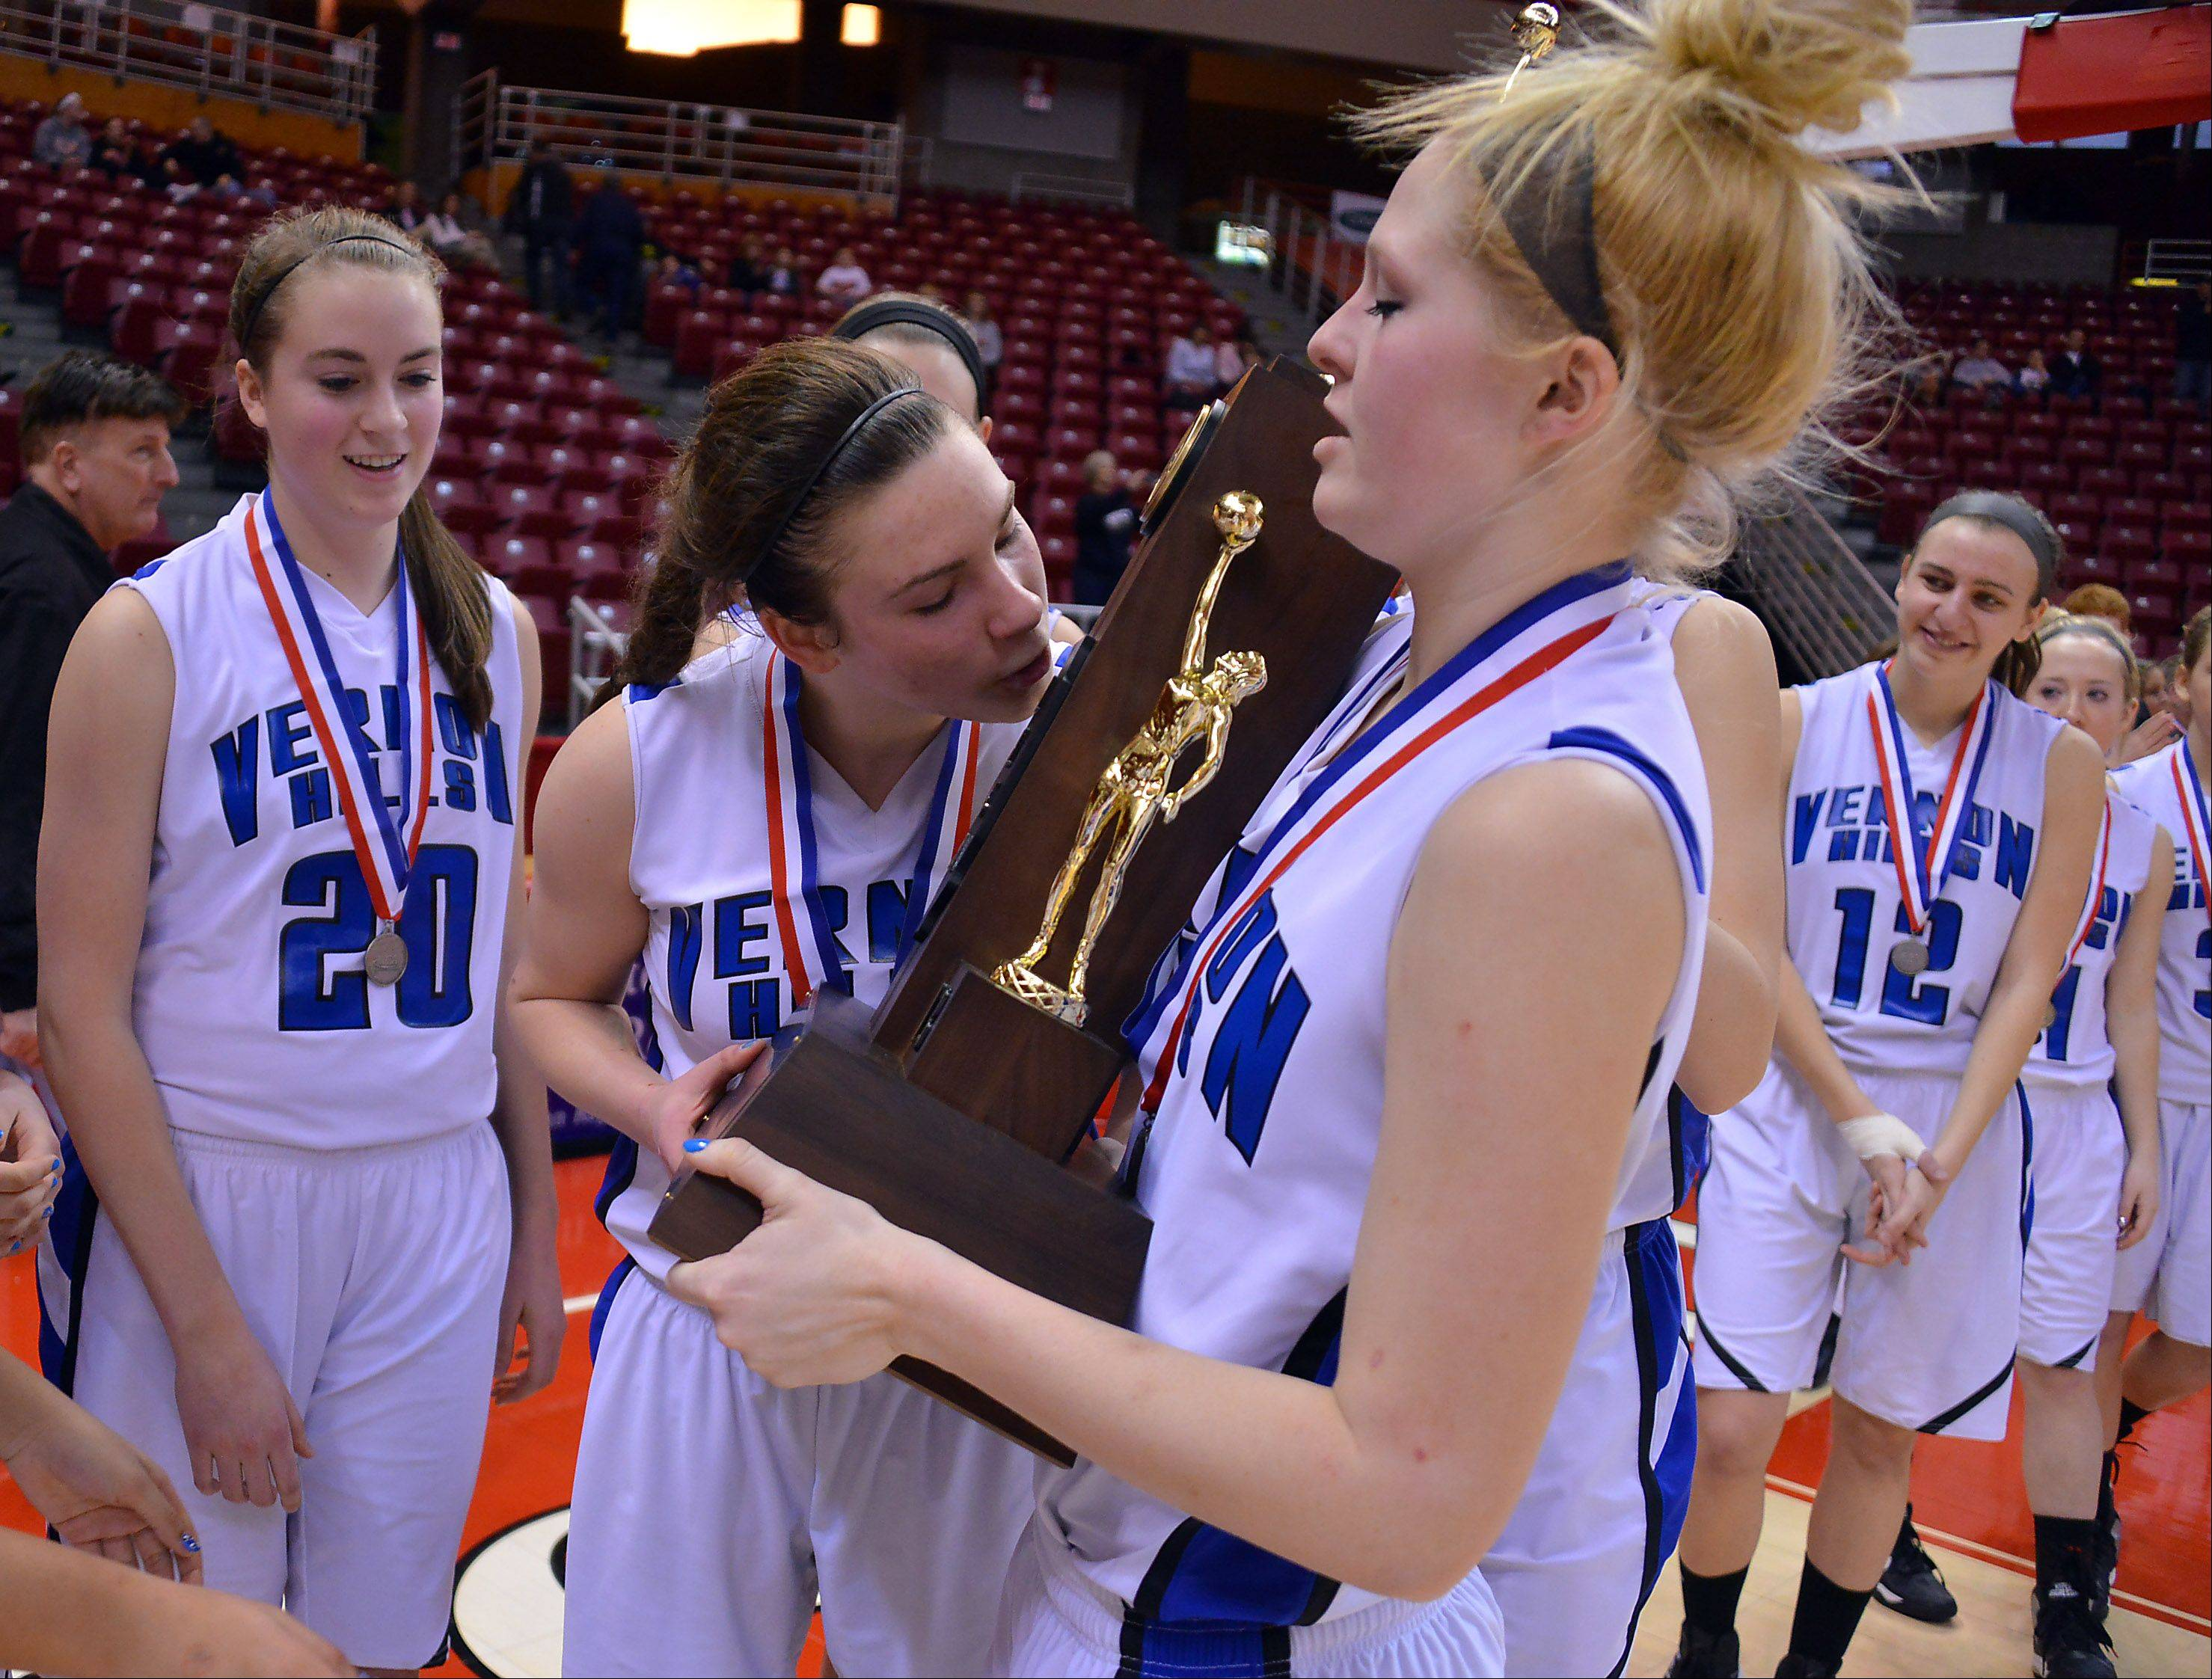 Vernon Hills� Brie Bahlmann kisses the second place trophy as teammate Sydney Smith holds it after they lost to Quincy Notre Dame in the Class 3A state girls basketball championship game in Normal on Saturday.